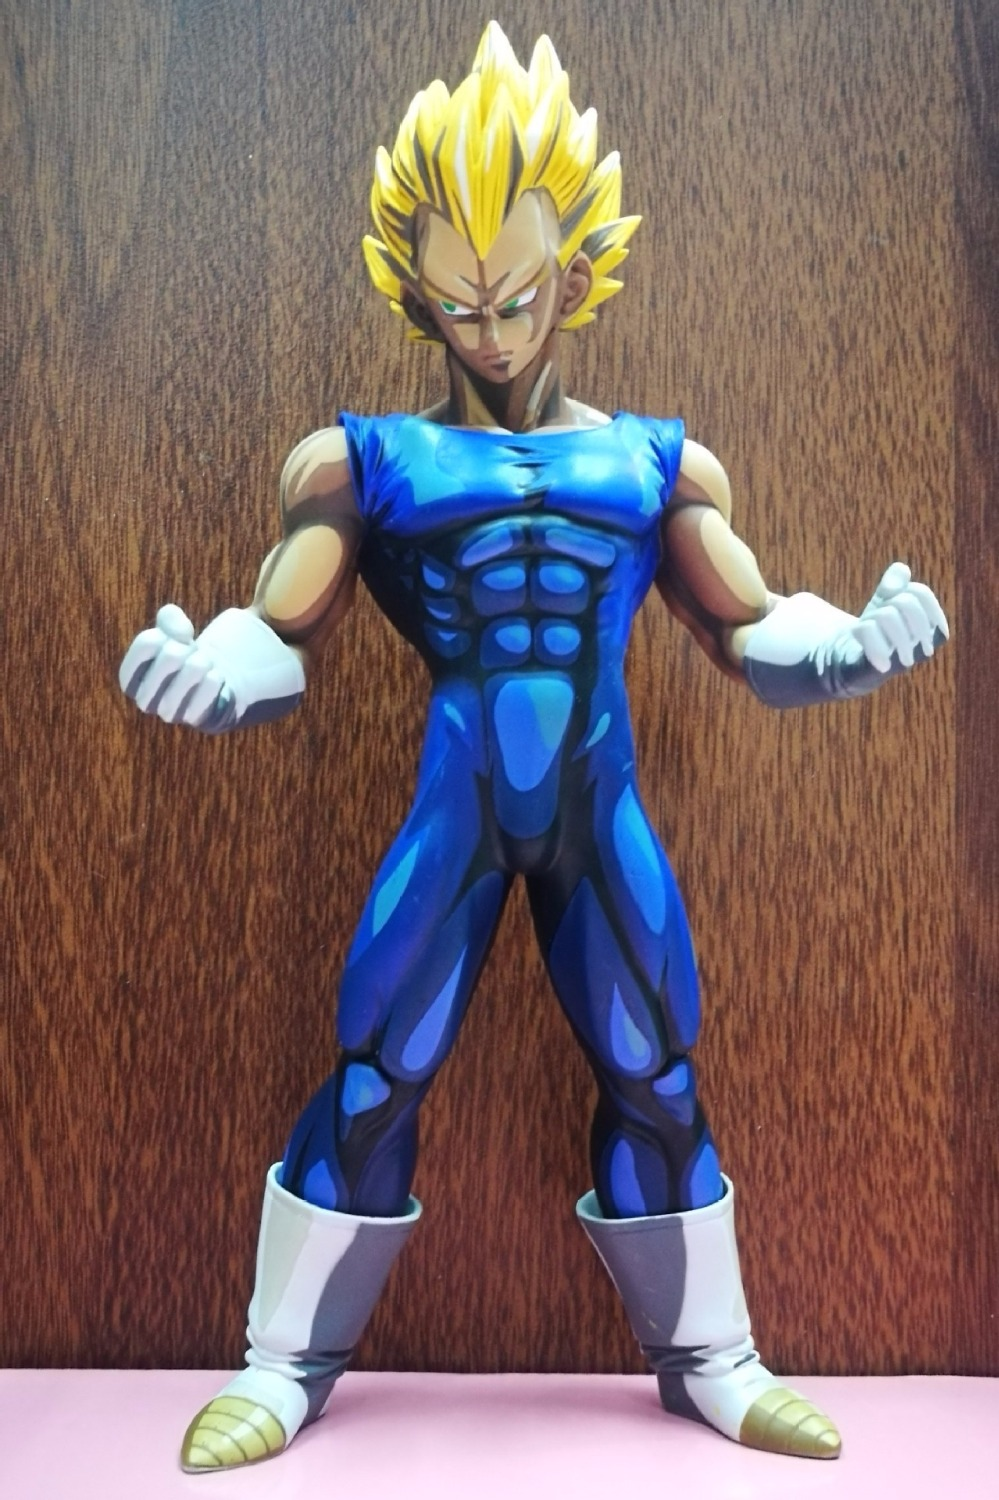 Anime Dragon Ball Z MSP Master Stars Piece Super Saiyan The Vegeta PVC Action Figure Collectible Model Toys Doll 26CM DBAF059 anime one piece dracula mihawk model garage kit pvc action figure classic collection toy doll